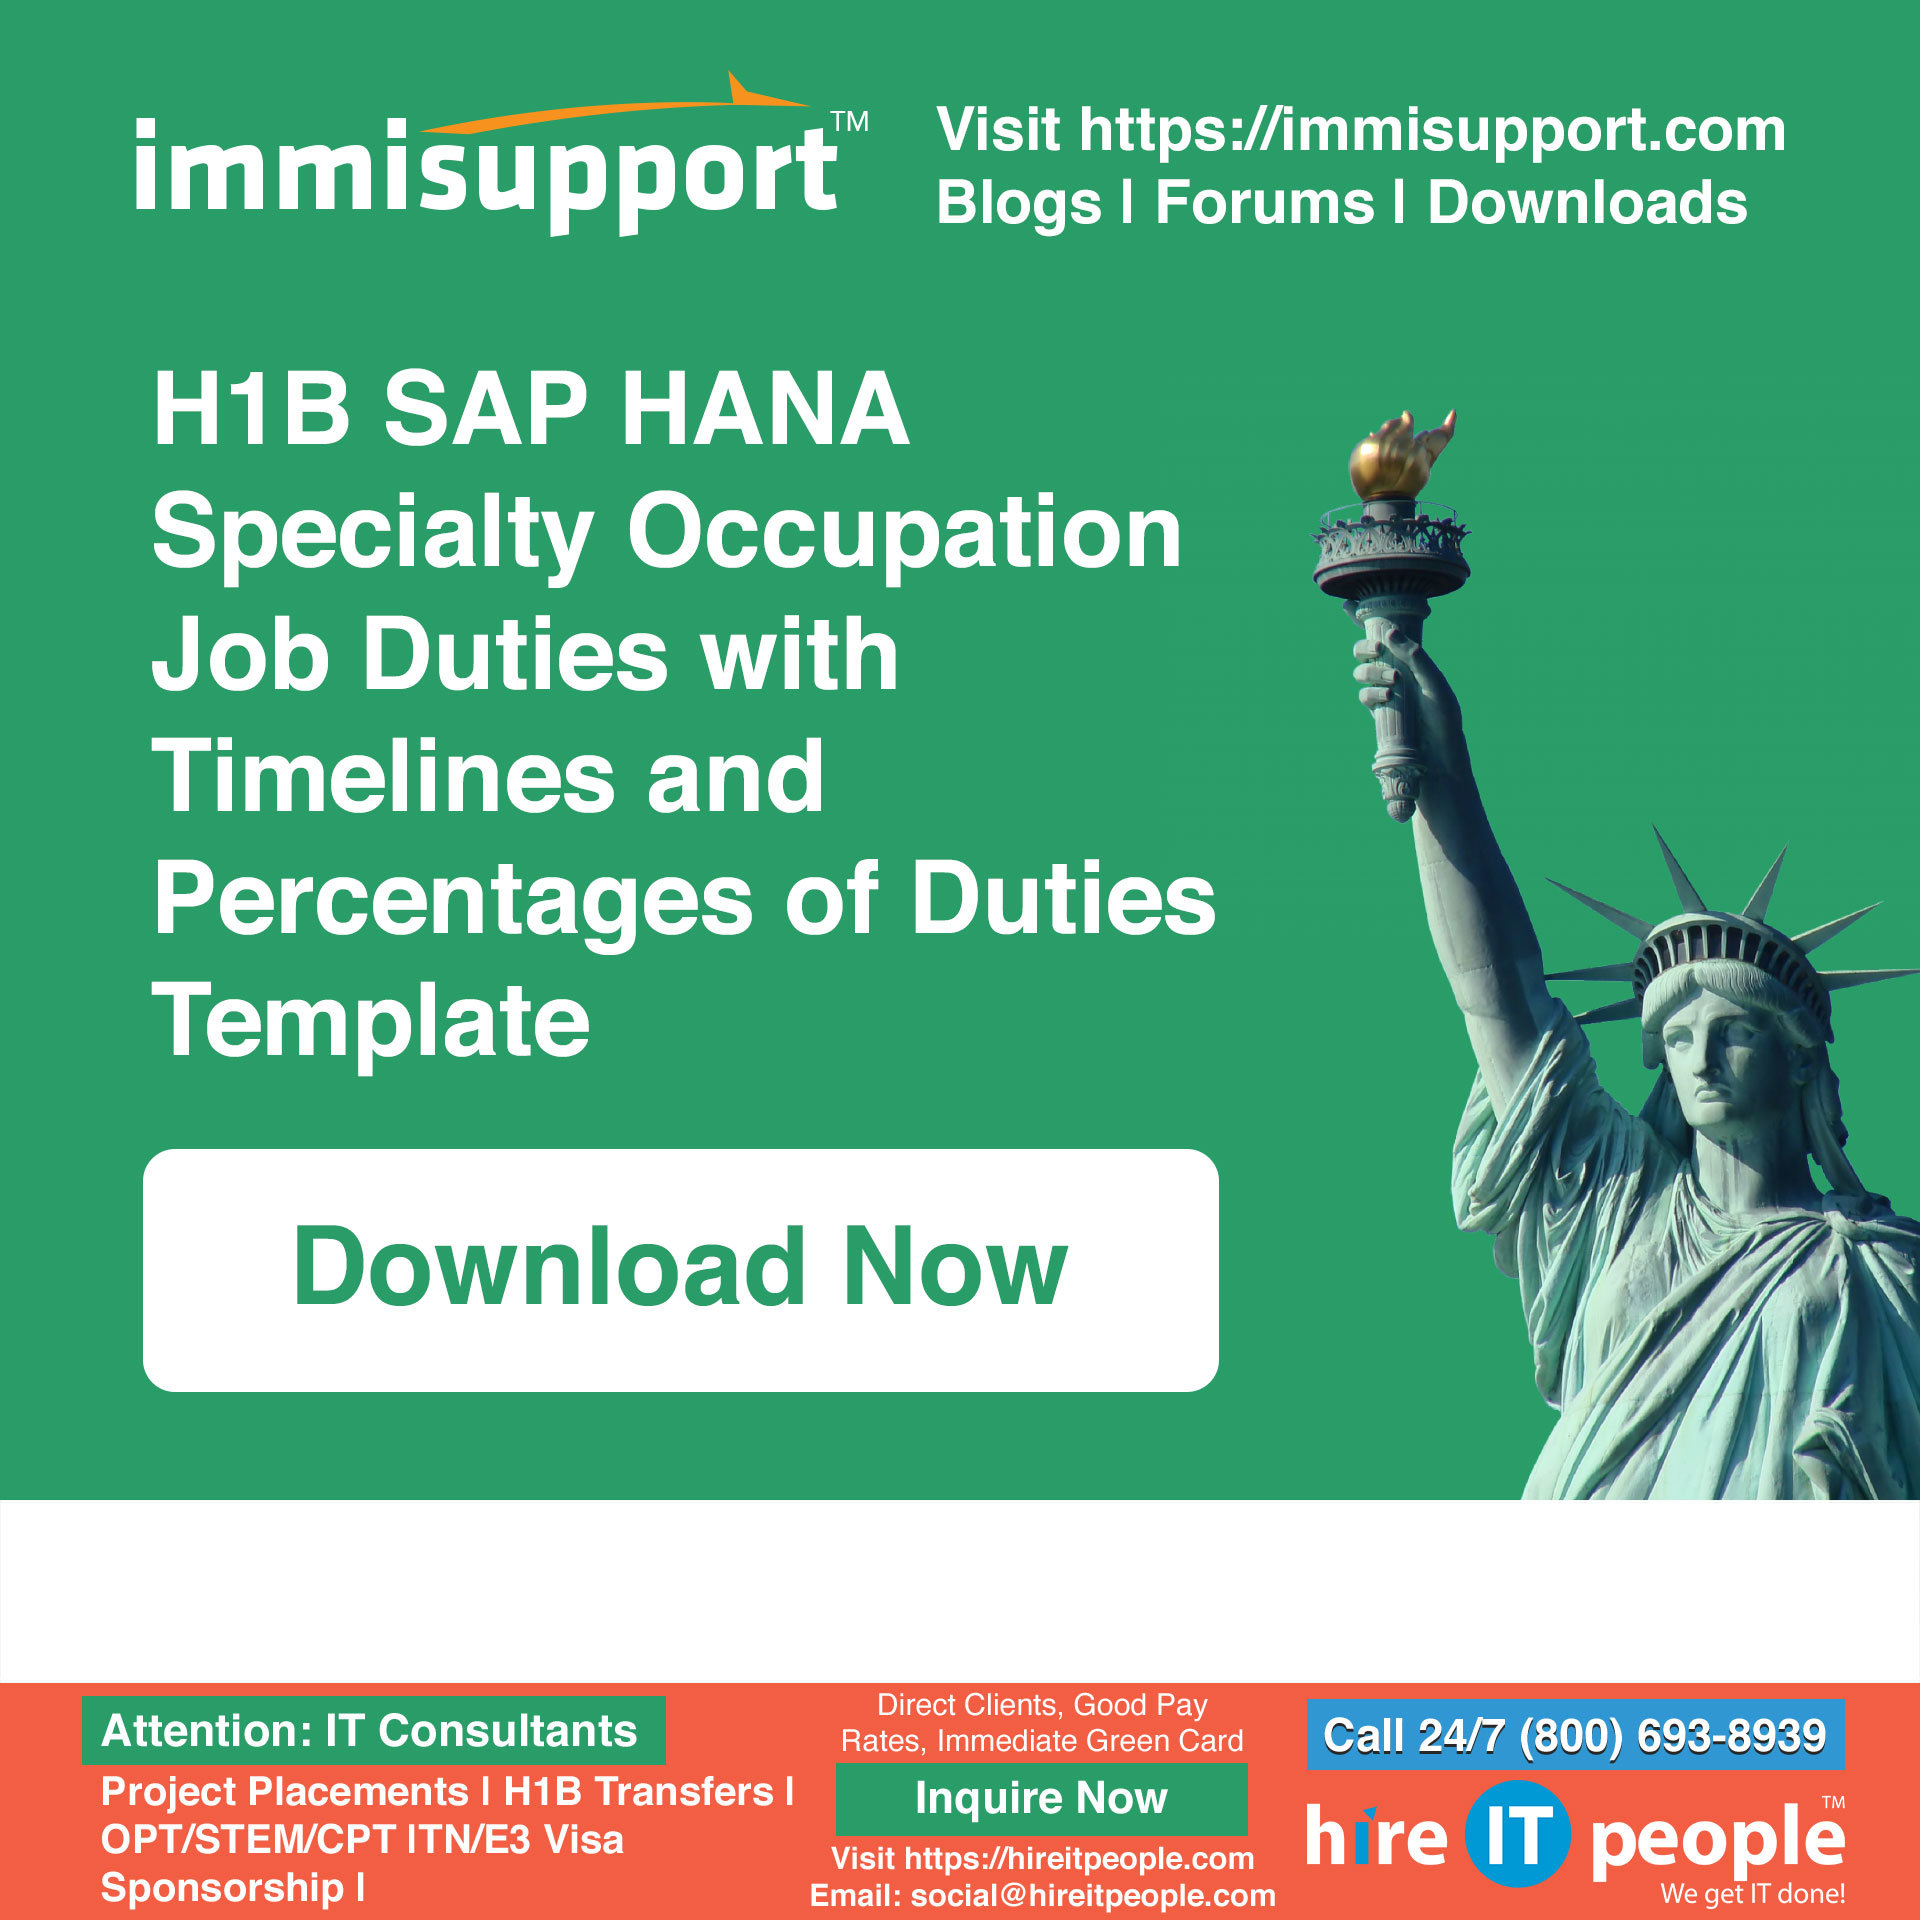 H1B SAP HANA Job Duties with Timelines and Percentages of Duties